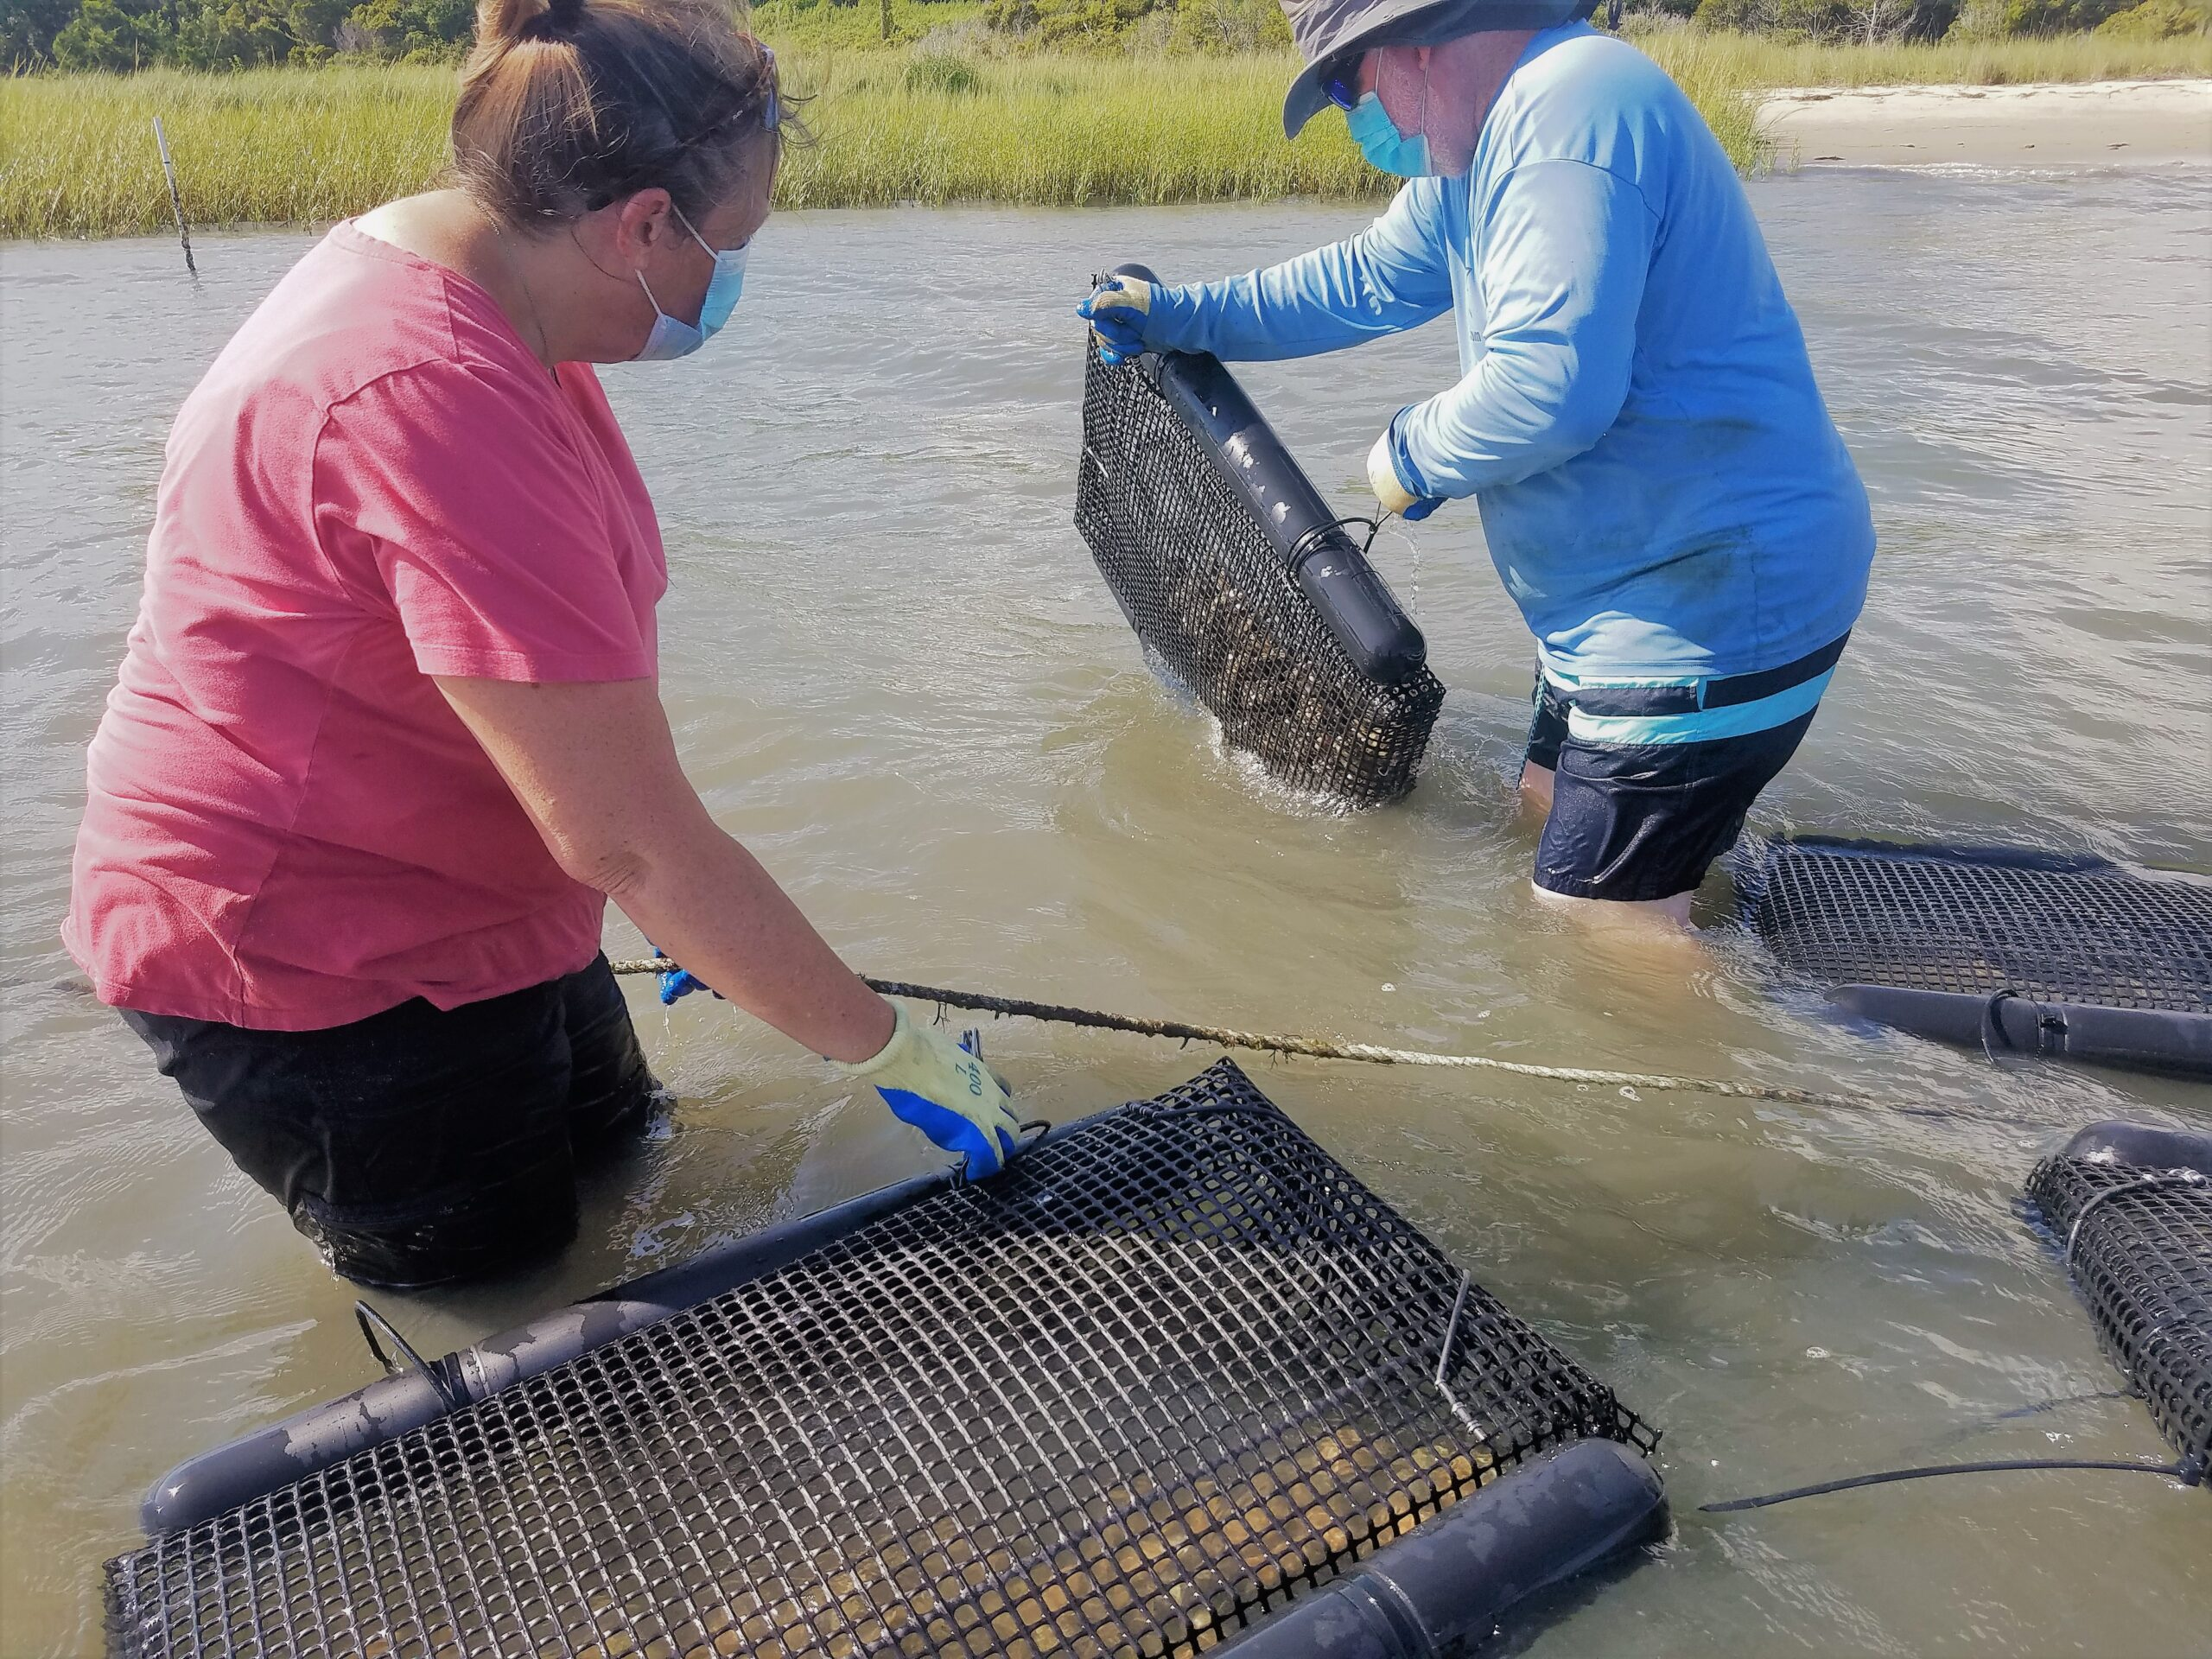 Students deploy floating bags stocked with oyster.